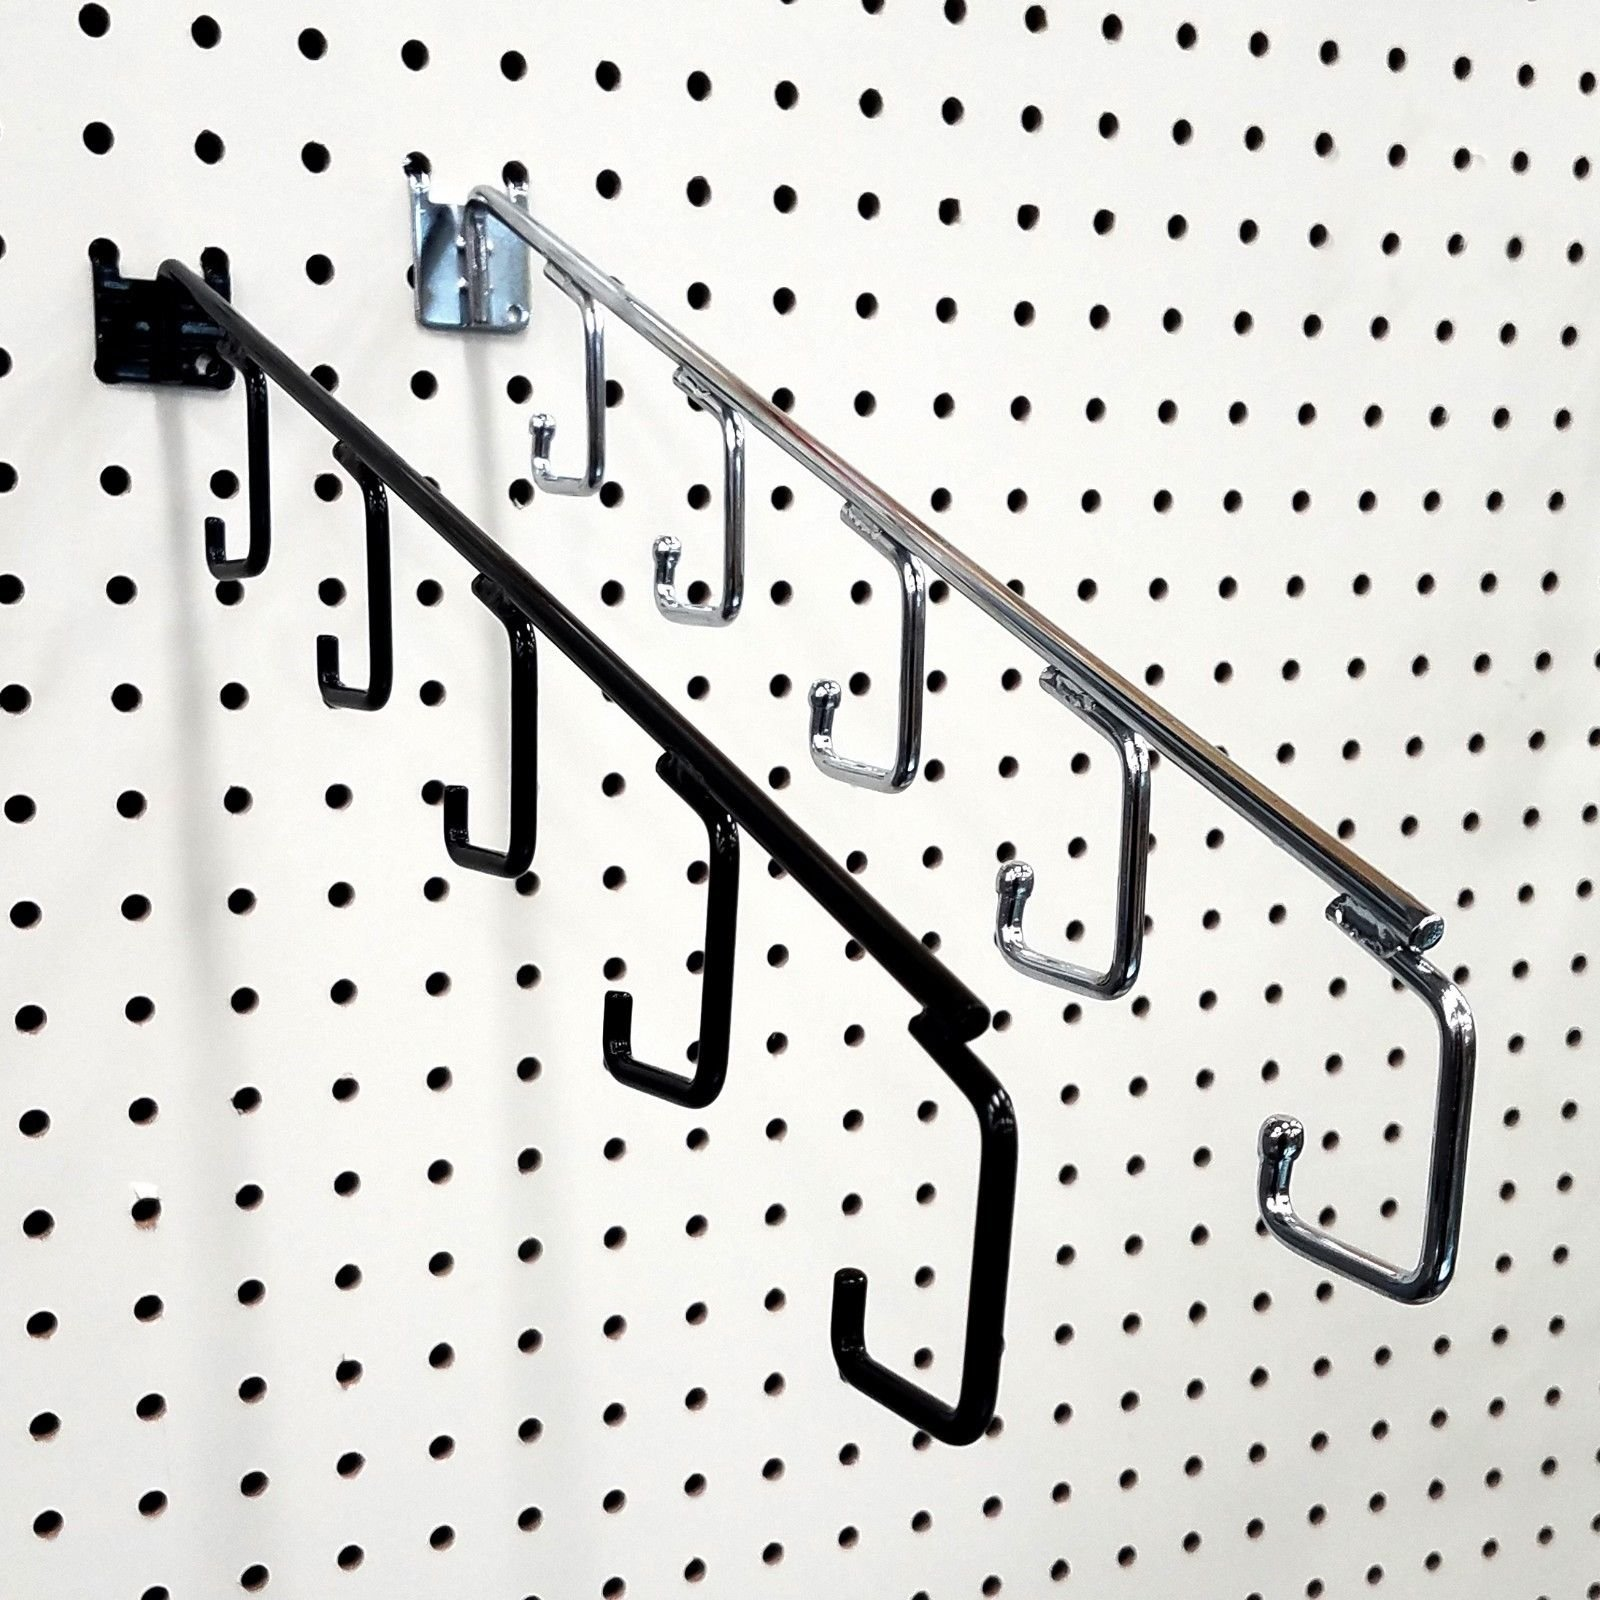 15'' L Pegboard 5 Hook Waterfall Faceout Hook, Black - 25 Pack